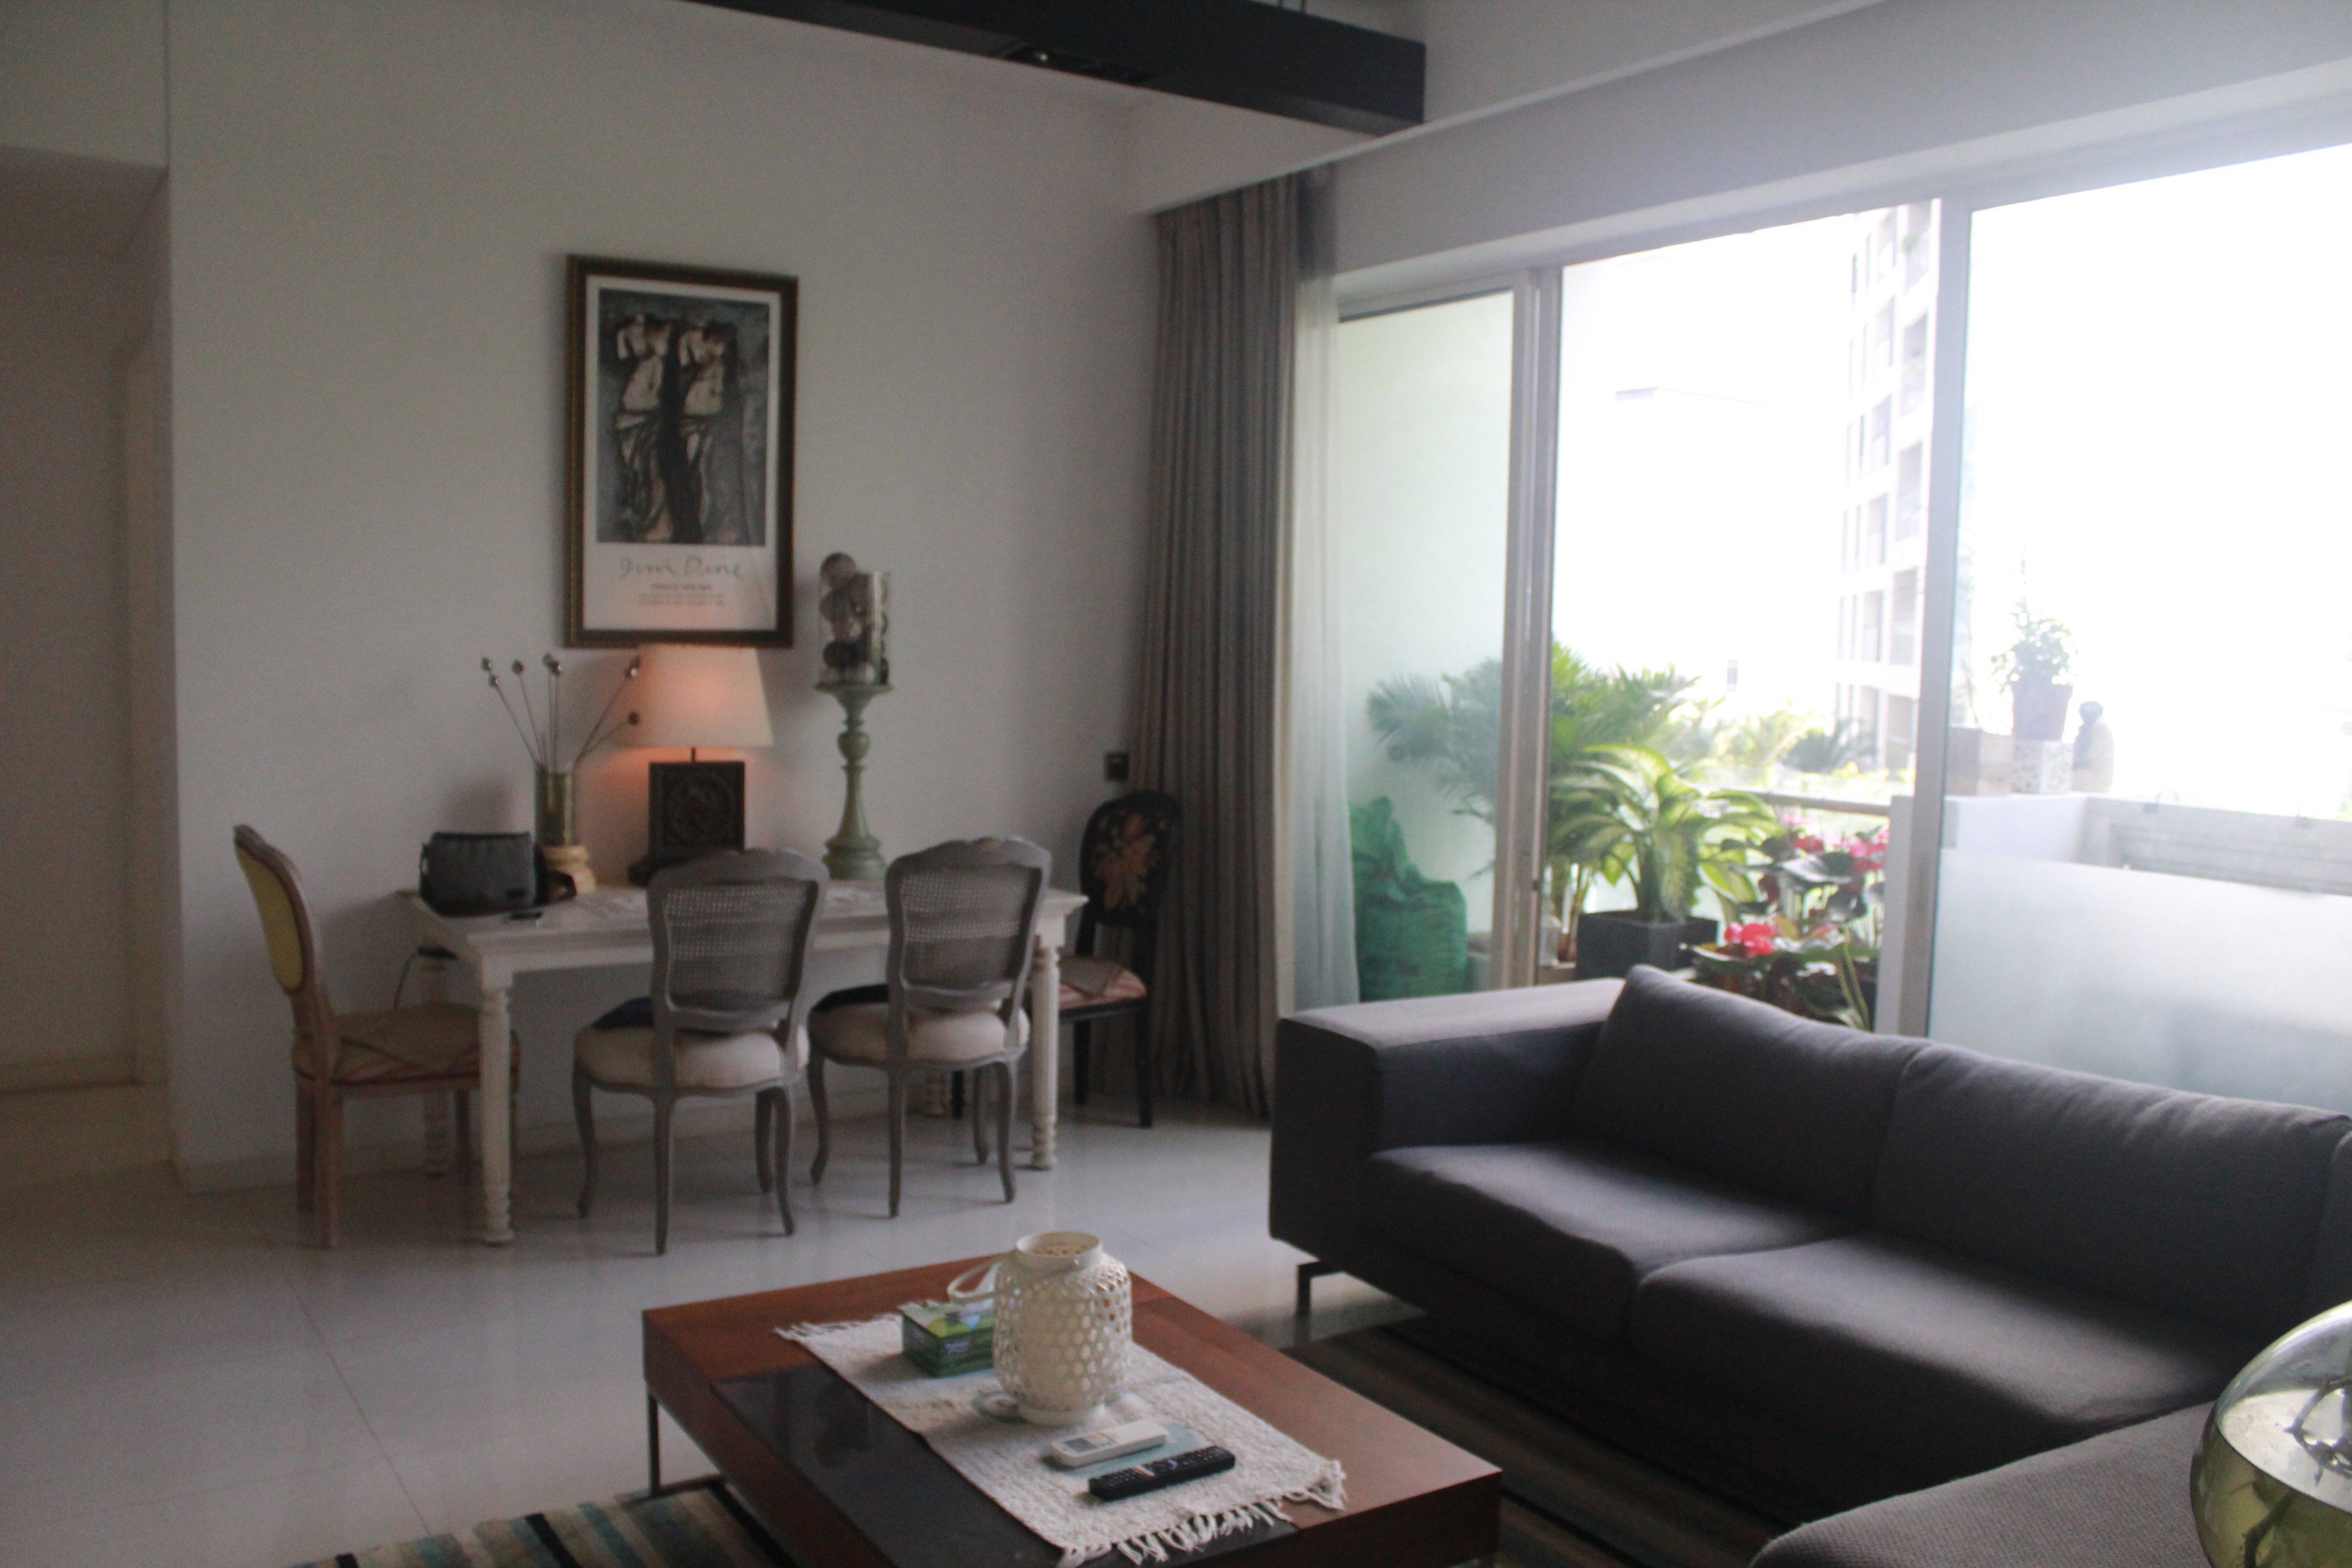 saigon pearl apartment for rent in binh thanh district hcmc D201237(1)